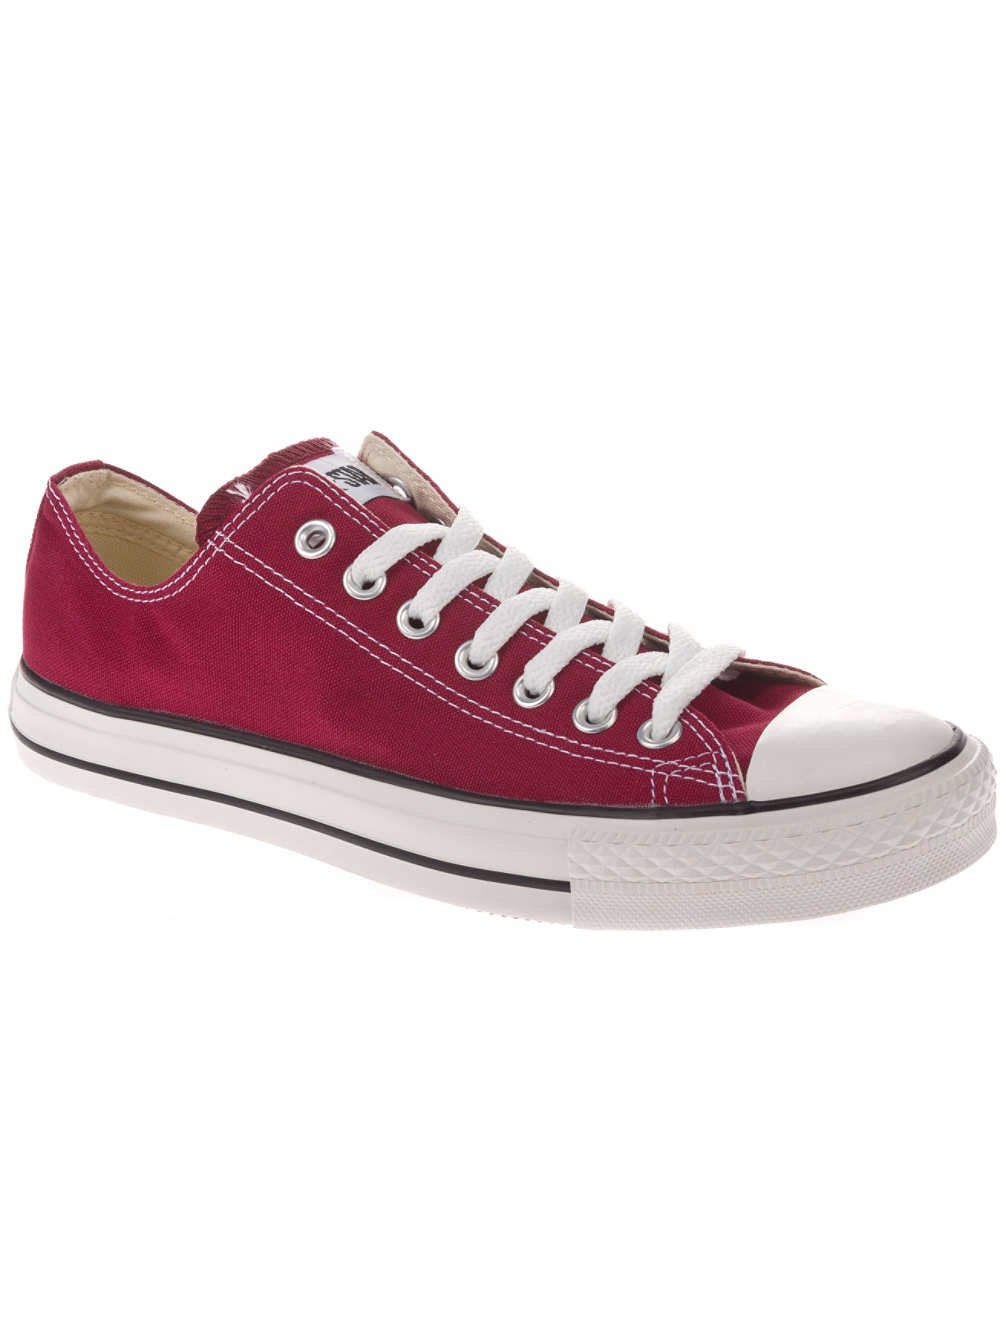 Converse Chuck Taylor All Star Ox Men US 9 Burgundy Fashion Sneakers